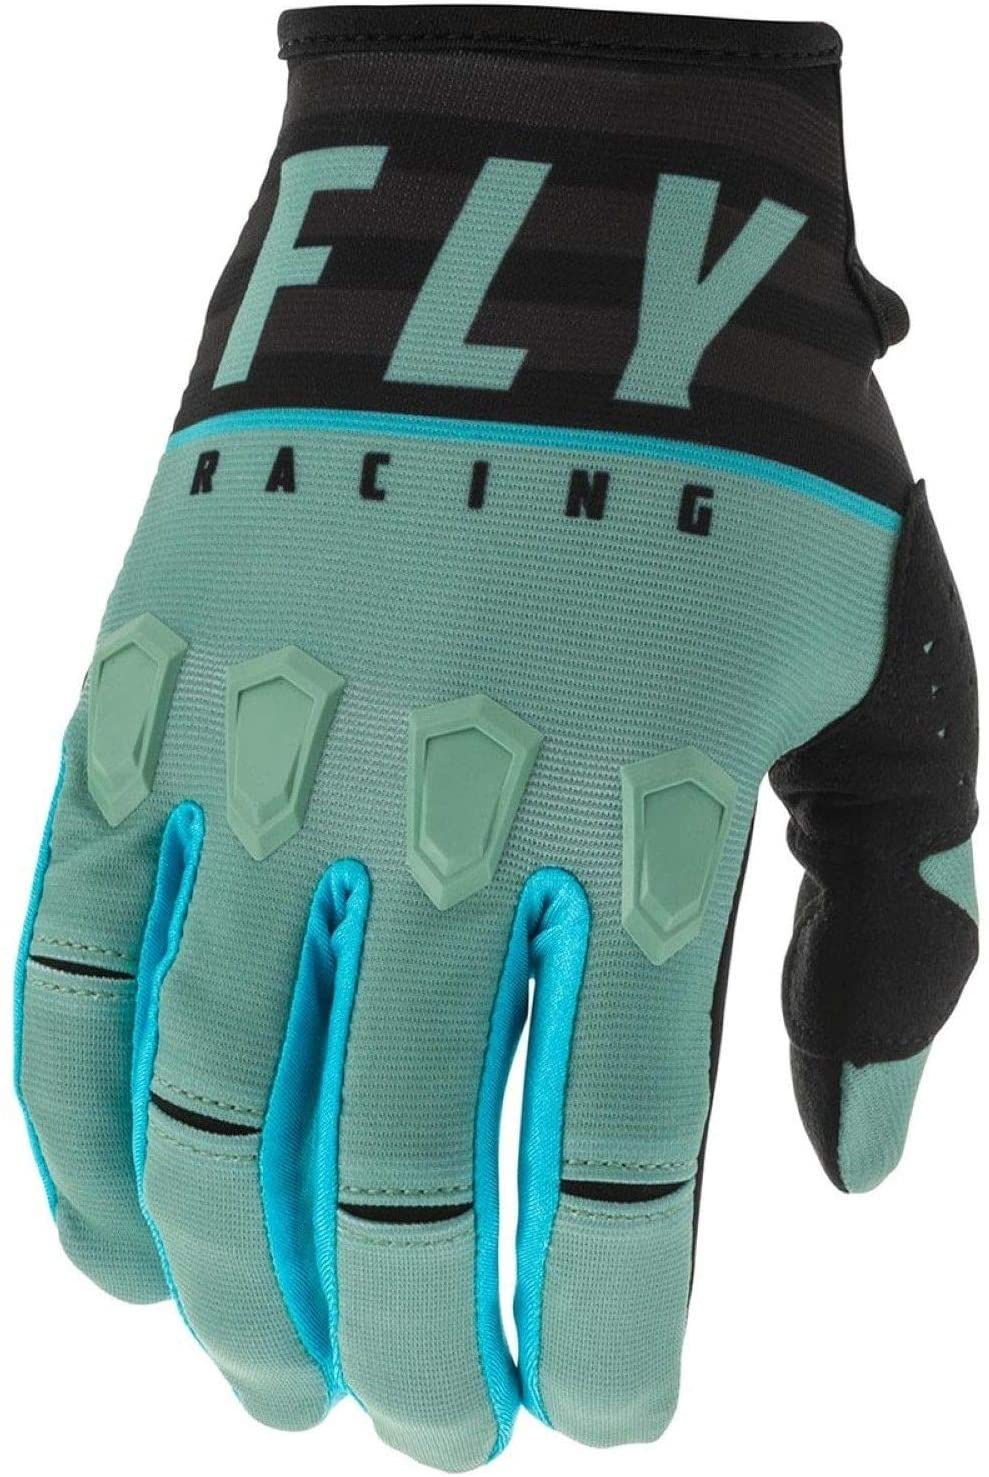 Fly Racing 2020 Youth Kinetic Gloves - K120 (Small) (SAGE Green/Black)